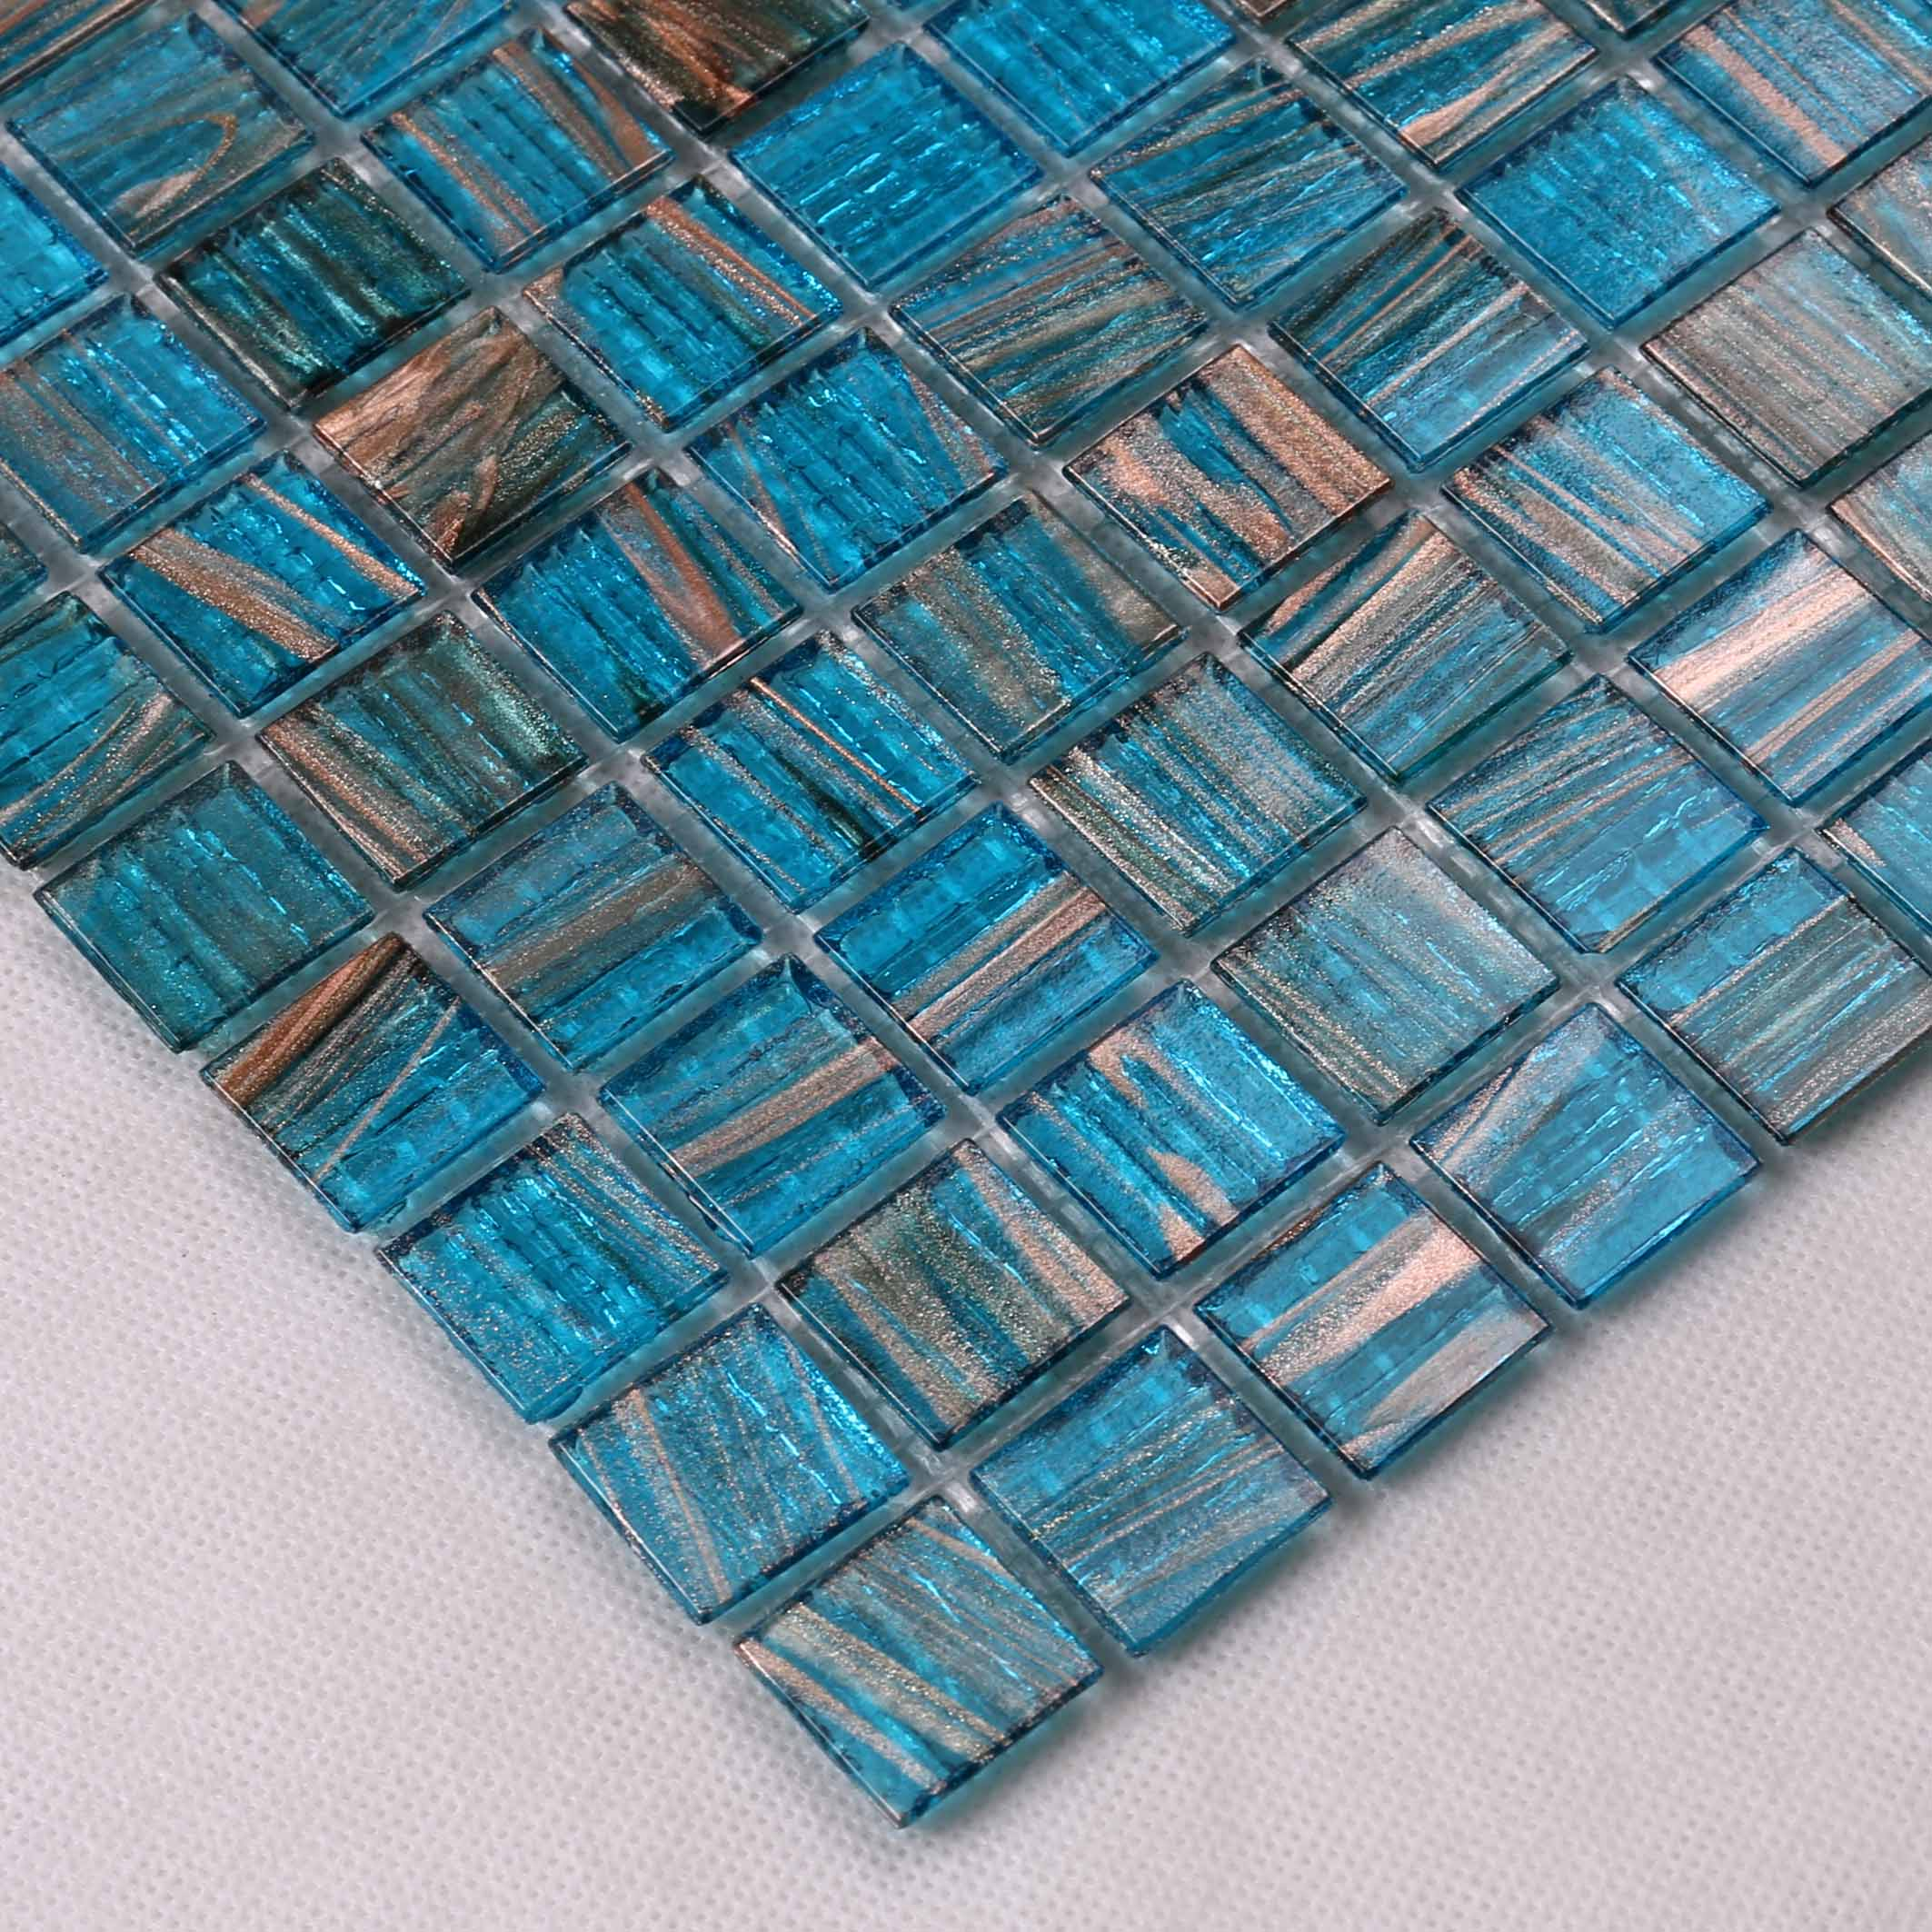 Heng Xing-Custom Pool Tile Manufacturer, Blue Glass Tile Backsplash | Pool Mosaic Tile-3